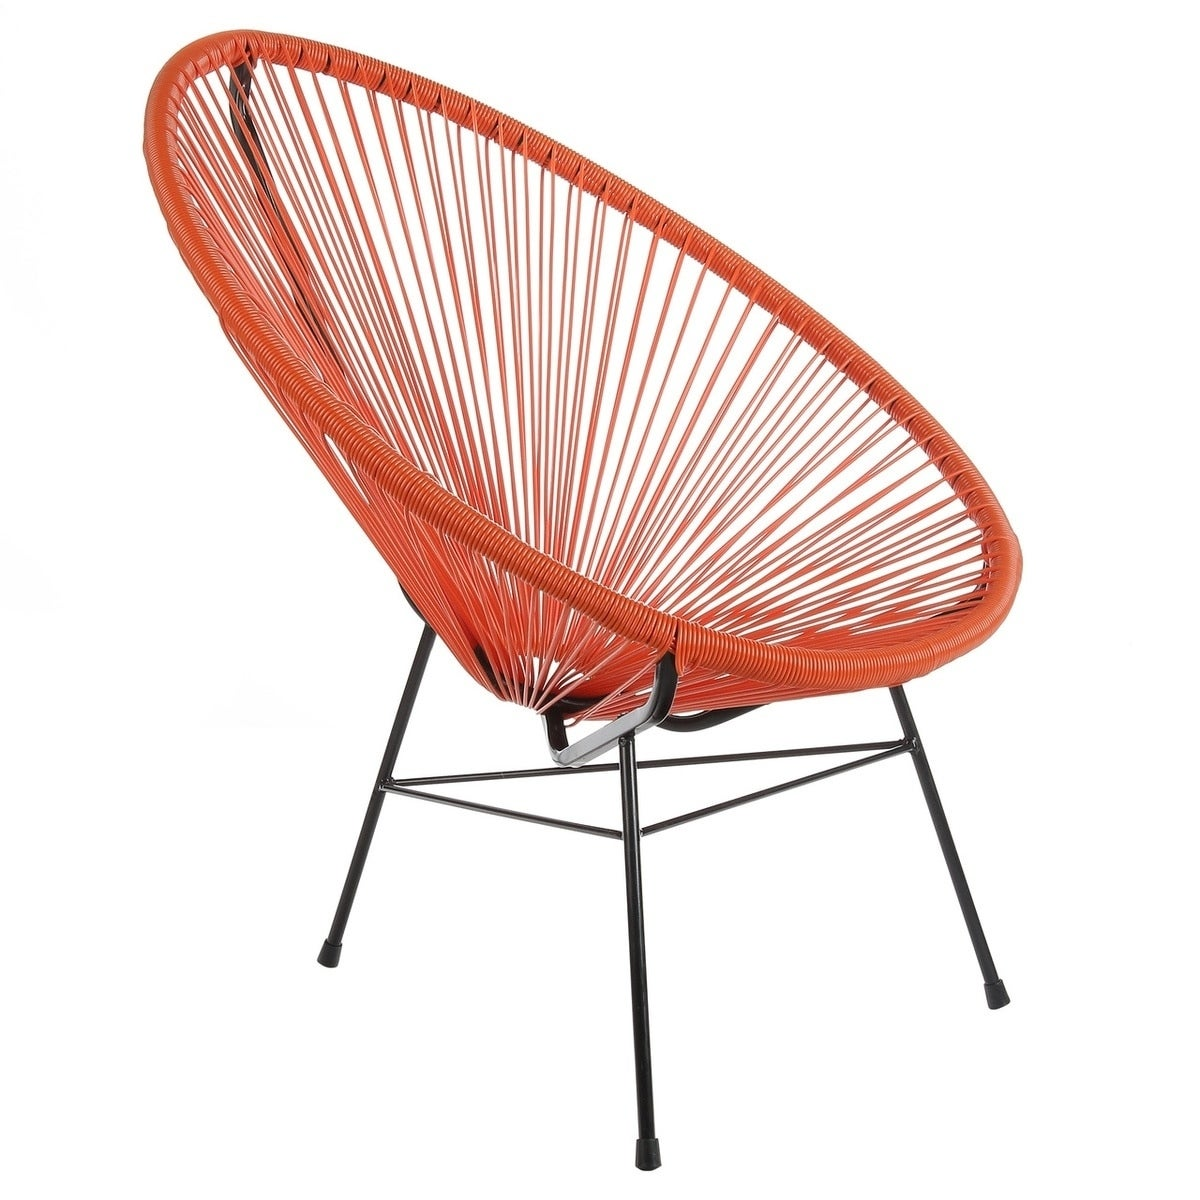 Shop Handmade Set Of 2 Acapulco Basket Lounge Chairs (China, Peopleu0027s  Republic Of)   Free Shipping Today   Overstock.com   10495668